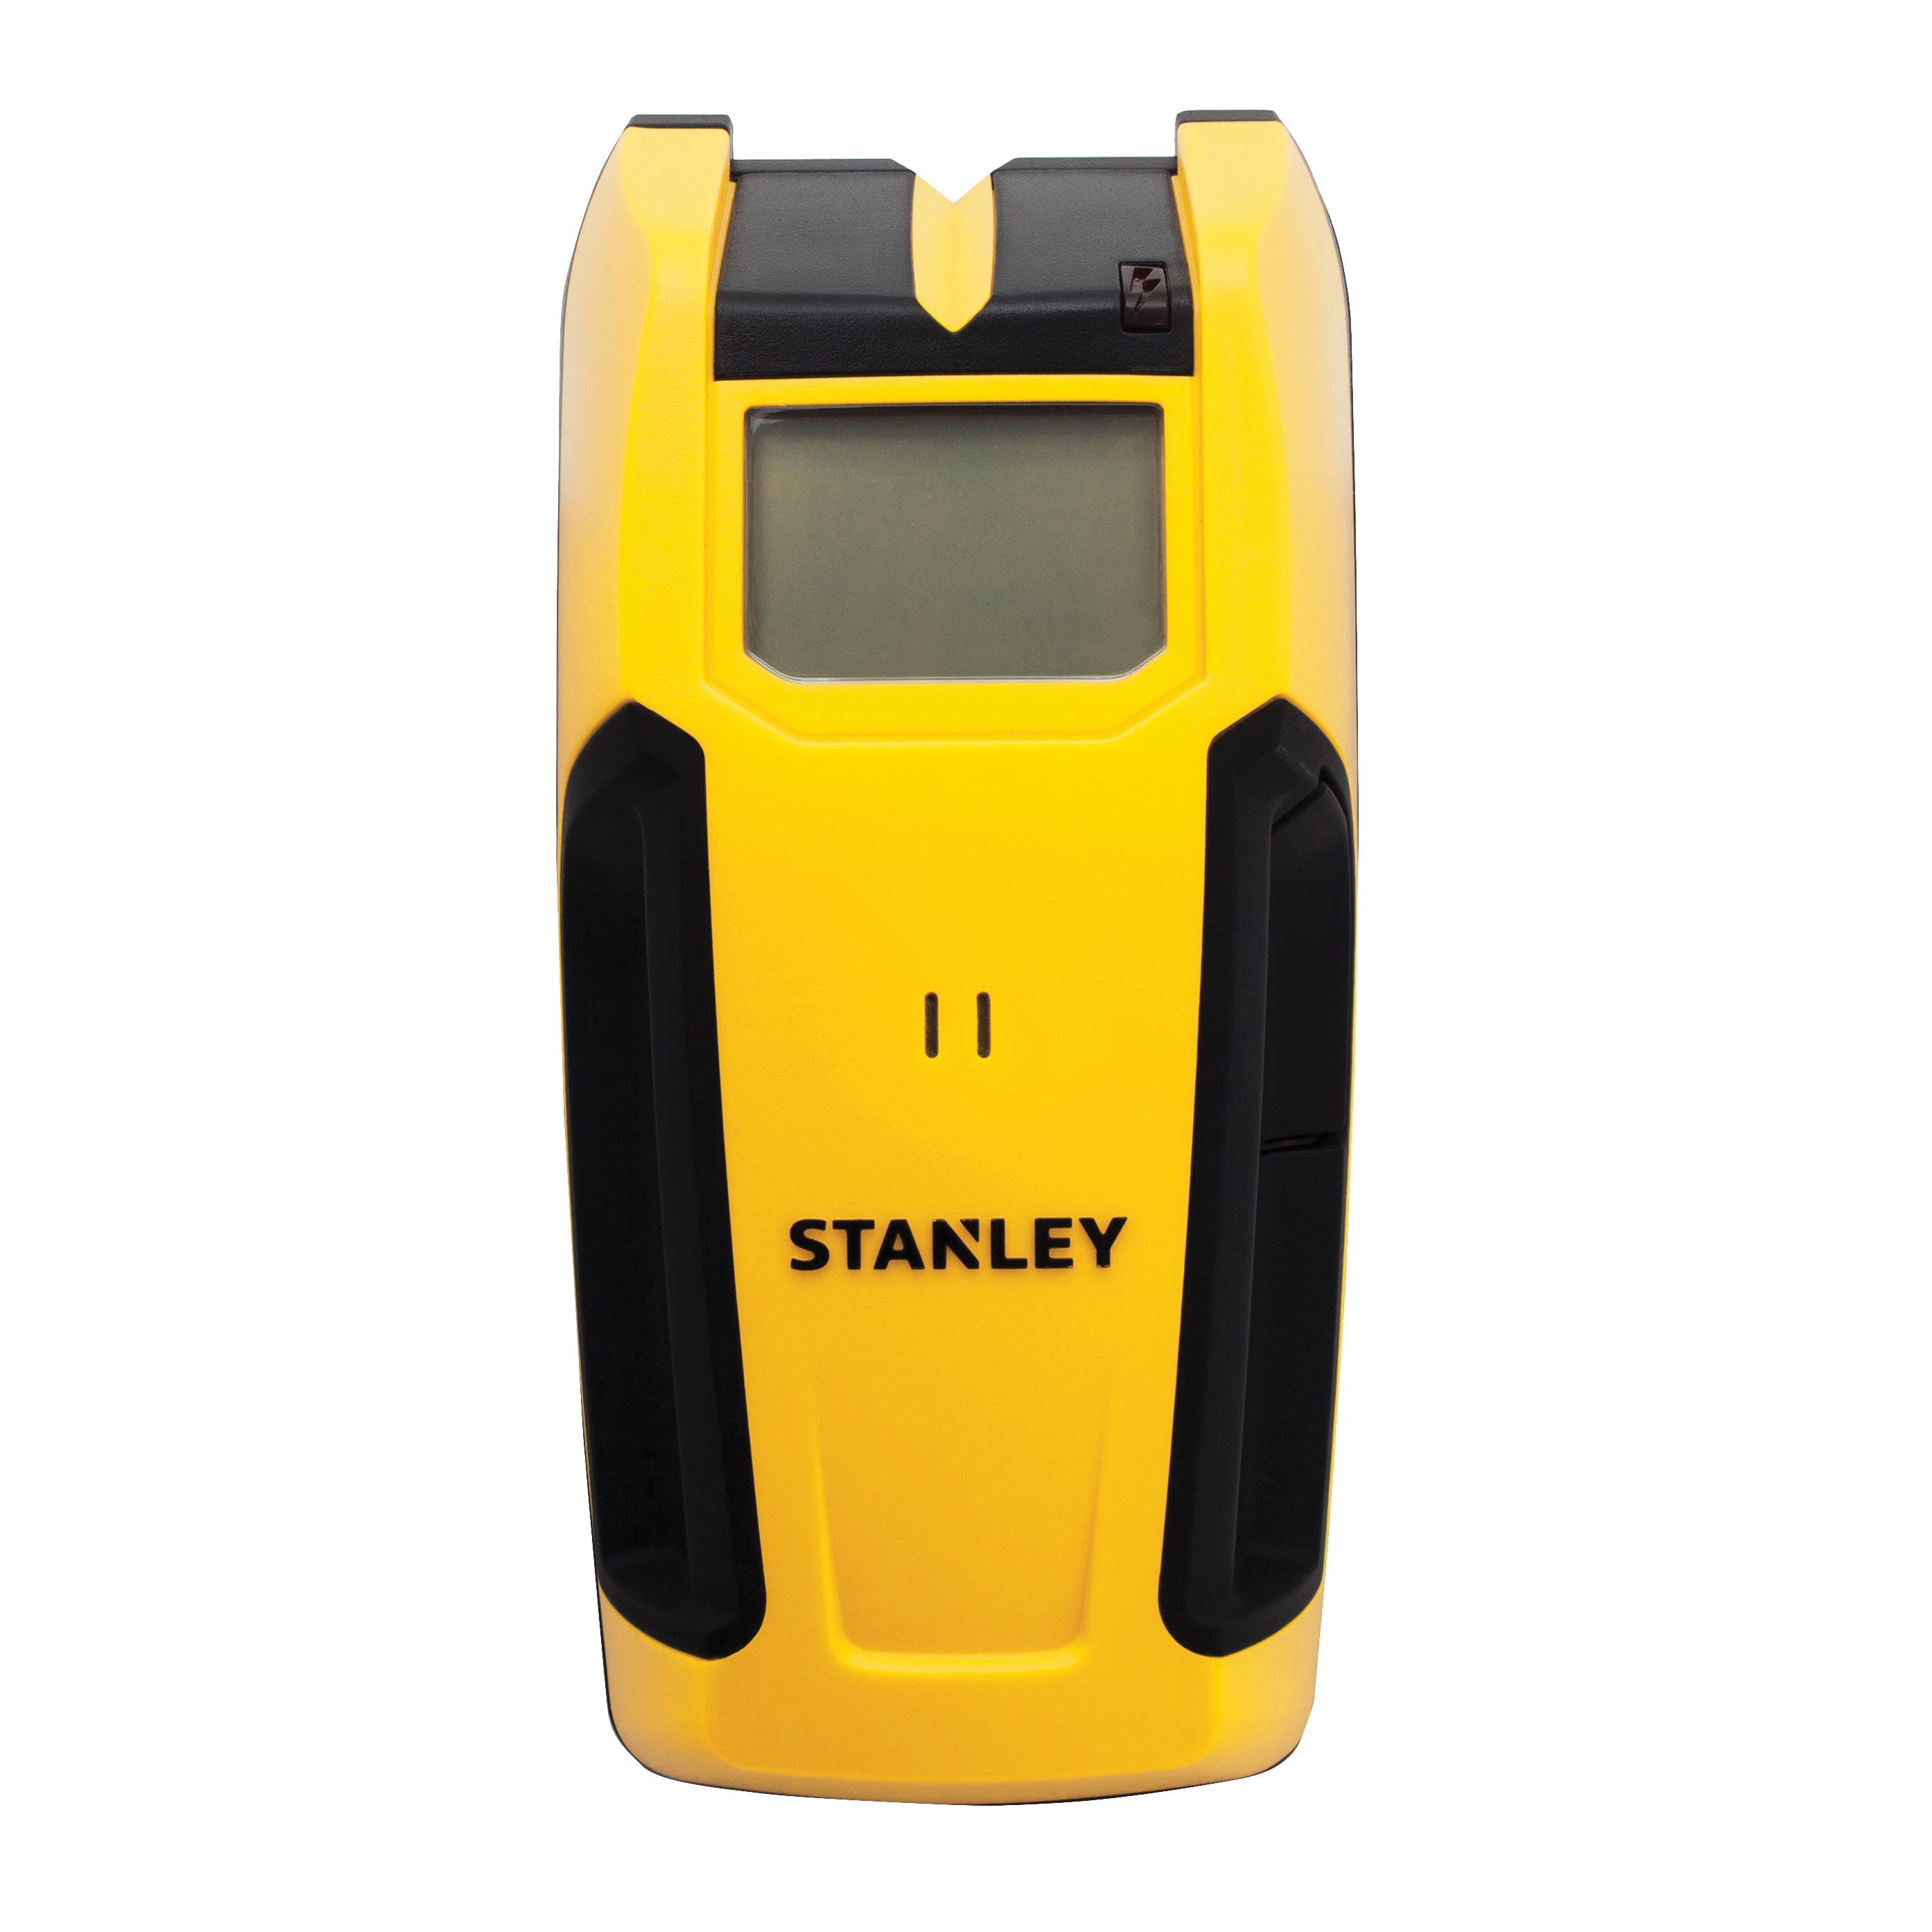 Picture of STANLEY STHT77406 Stud Sensor, 9 V Battery, 3/4 in Detection, Detectable Material: Metal/Wood